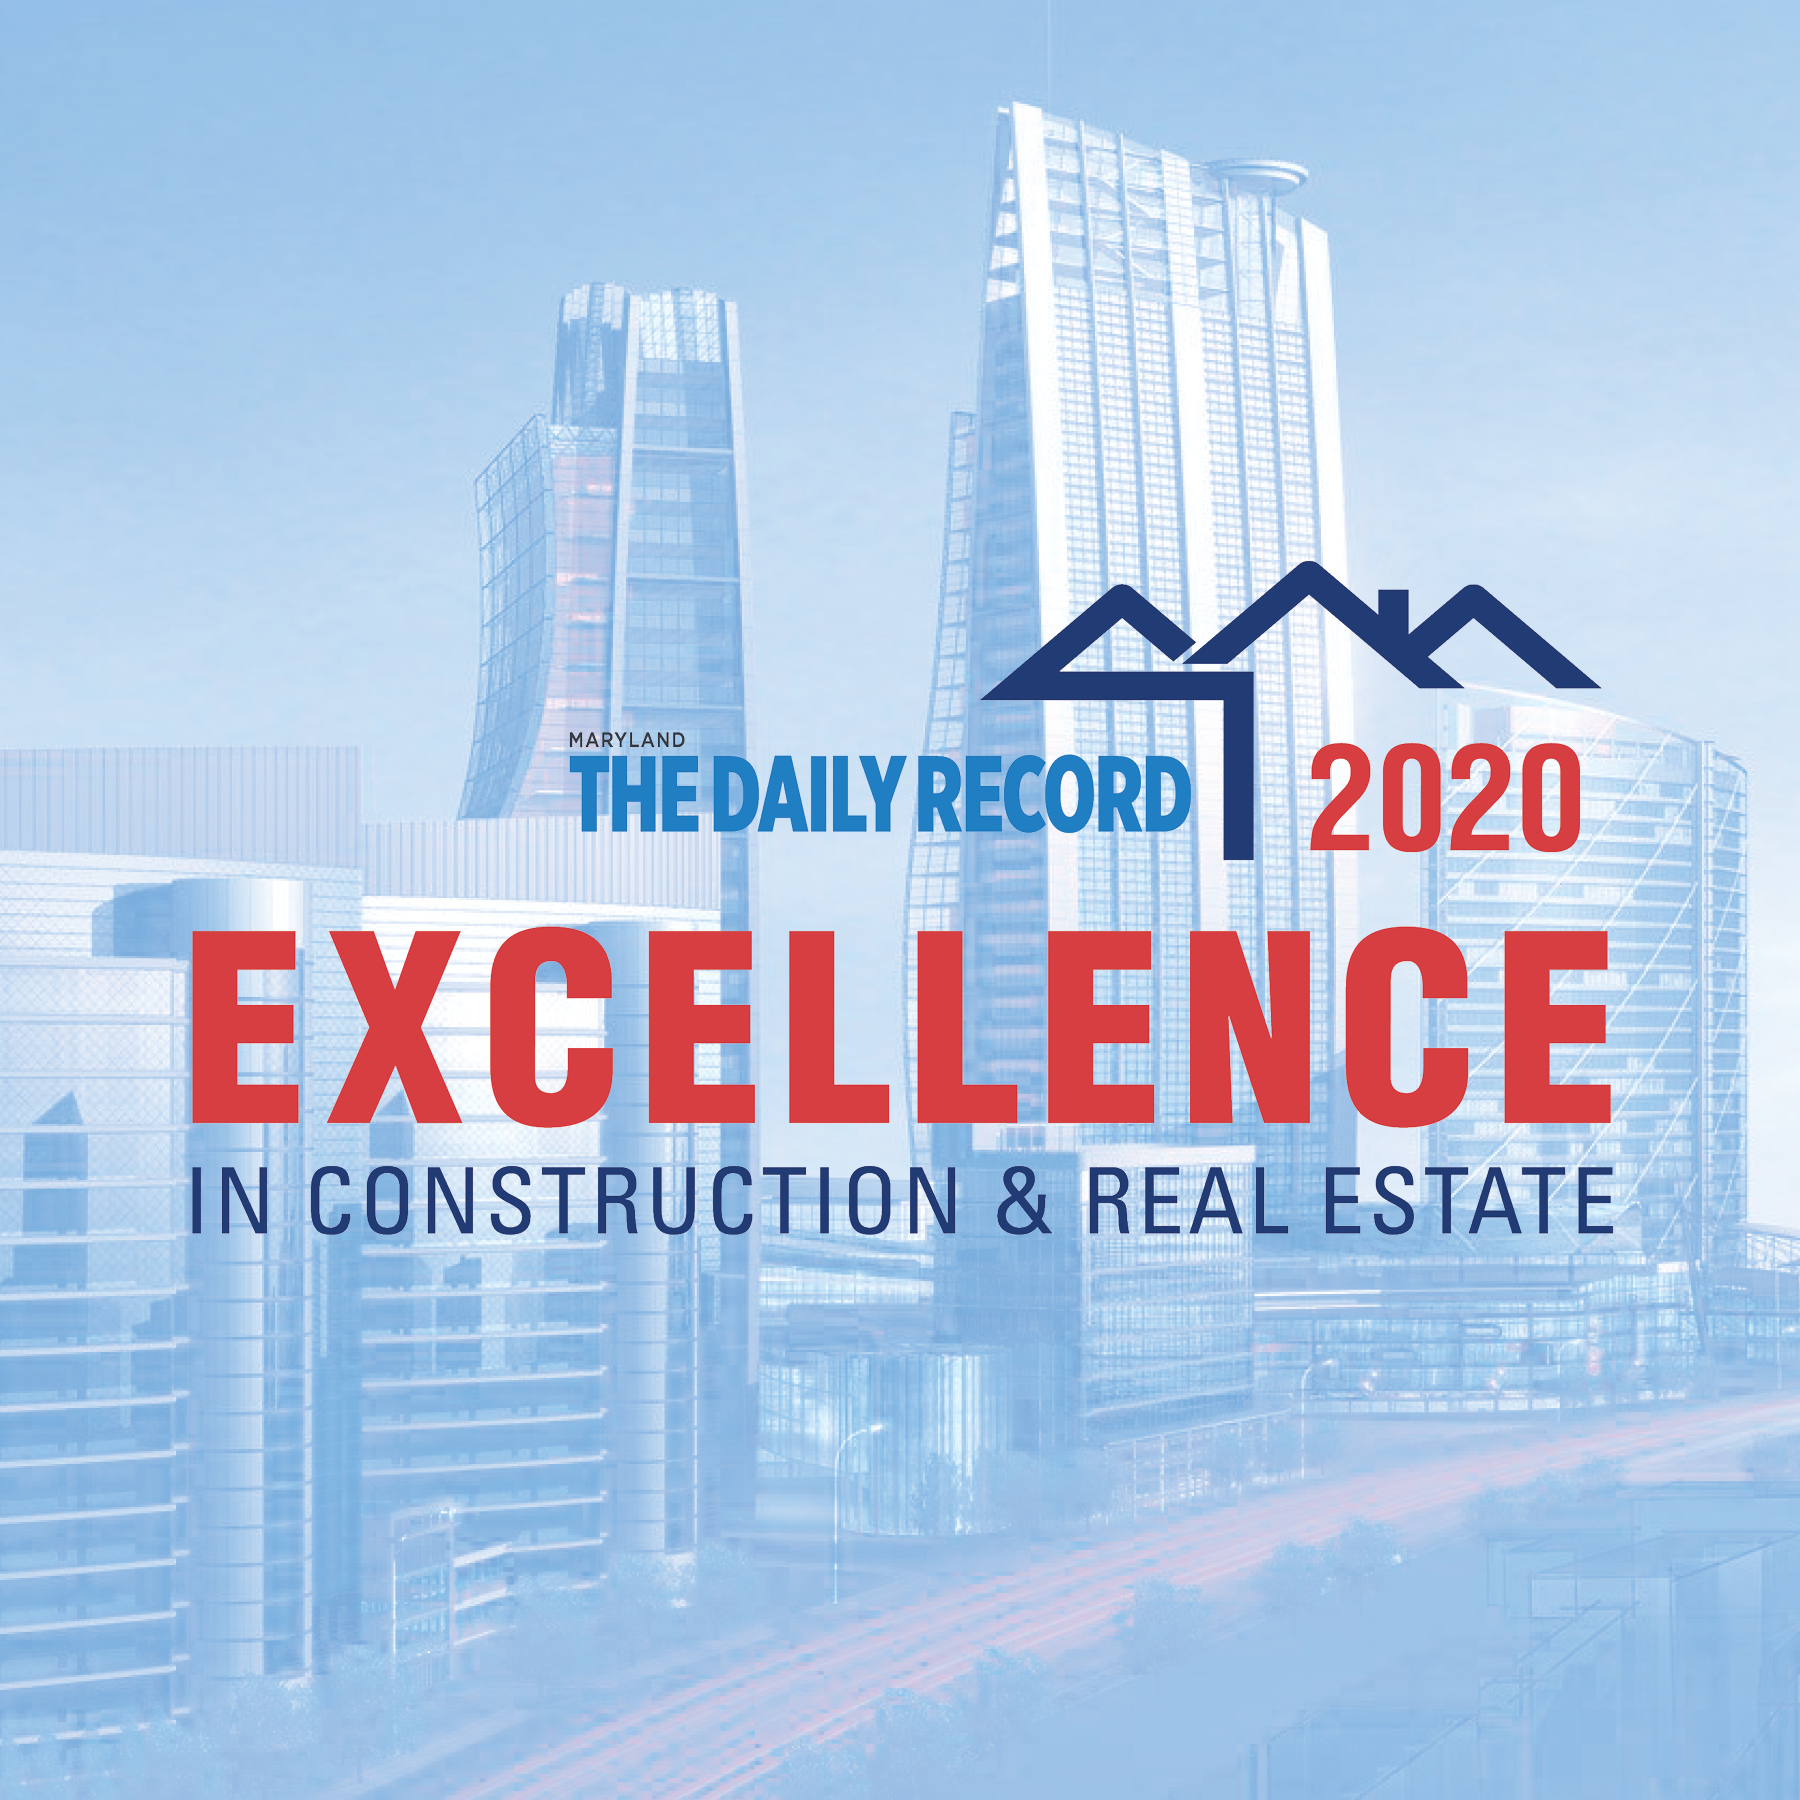 Harkins Named Excellence in Construction & Real Estate Honoree